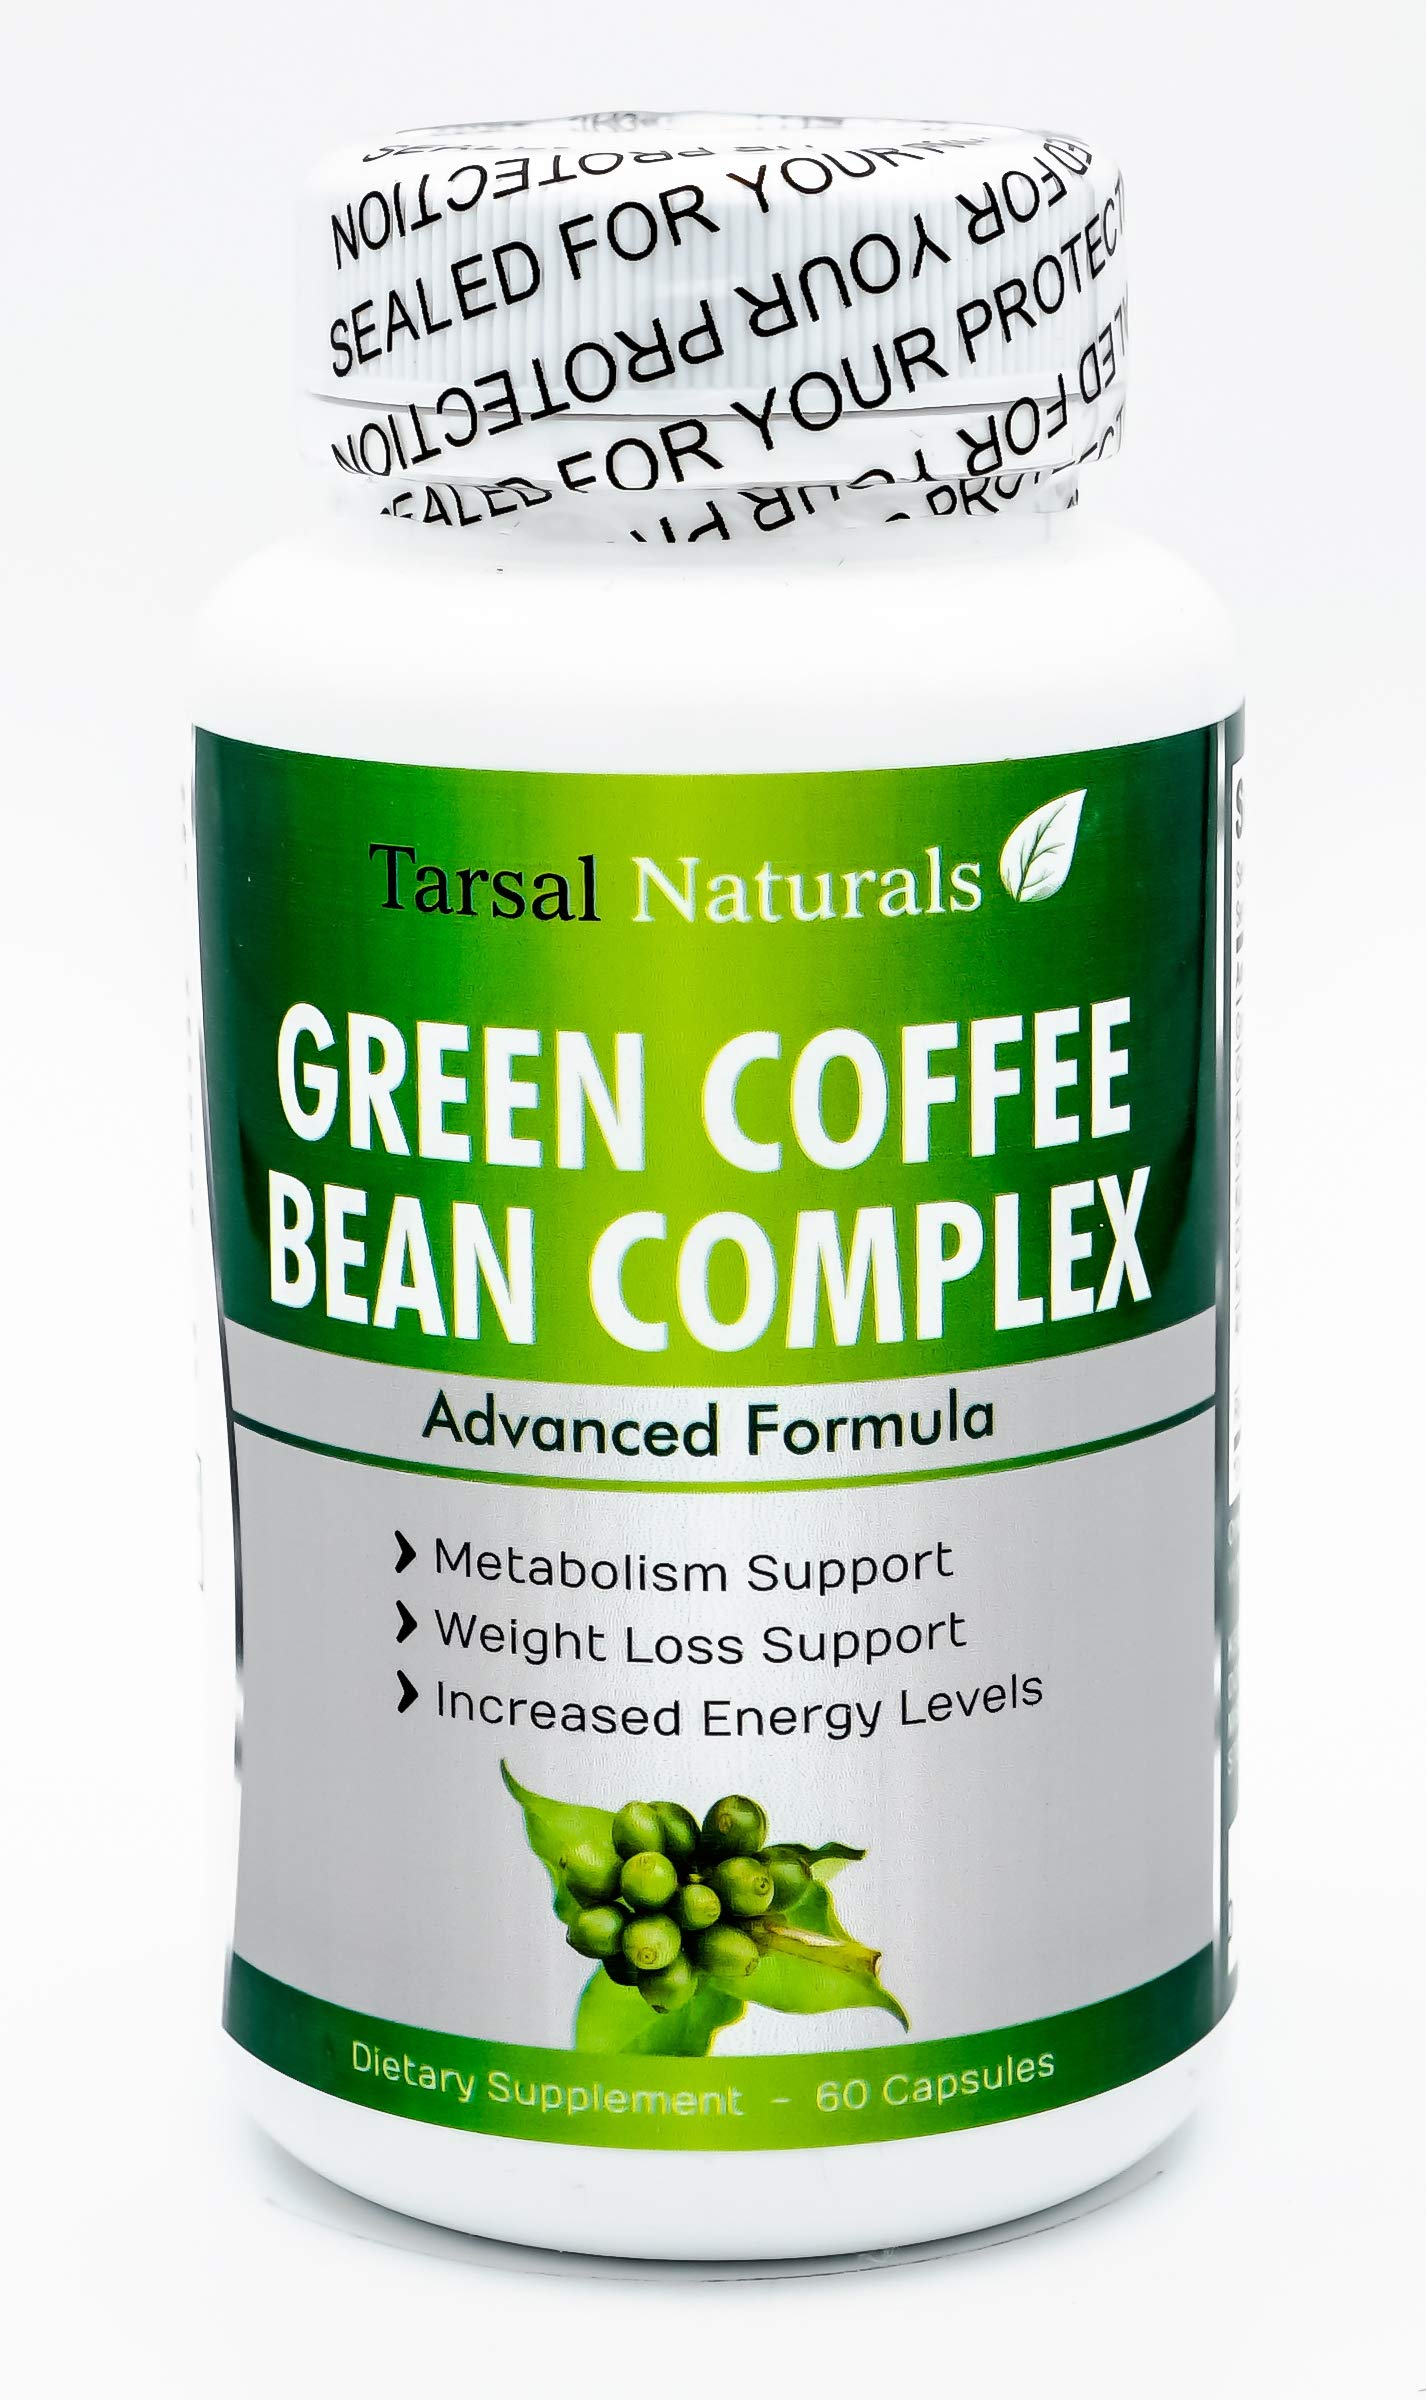 Green Coffee Bean Complex 60 Capsules Help in Obesity Diabetes high Blood Pressure and Bacterial infections Reduce The Absorption of carbohydrates from The Digestive Made in USA Gluten Free FDA